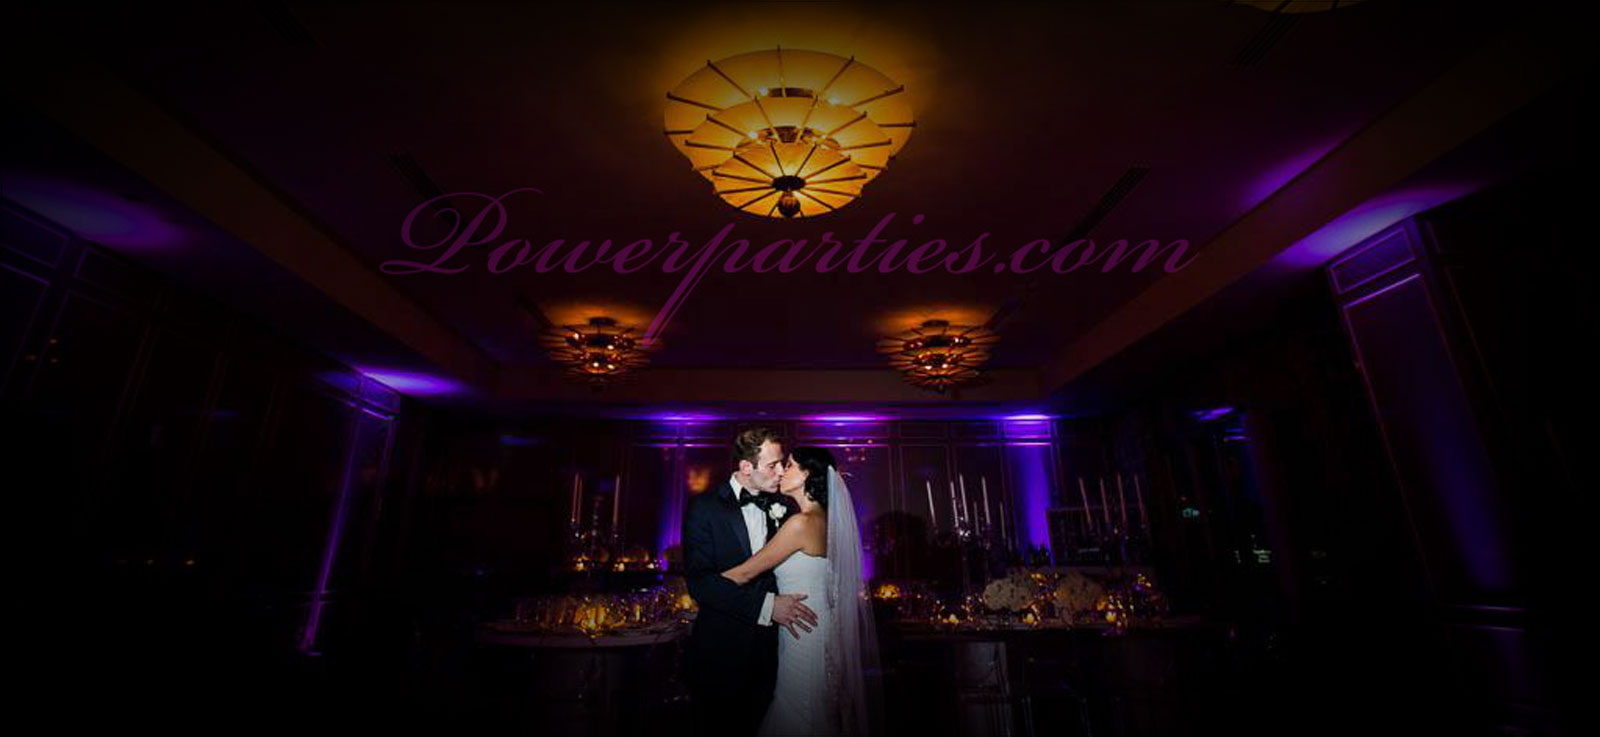 power-parties-wedding-lighting